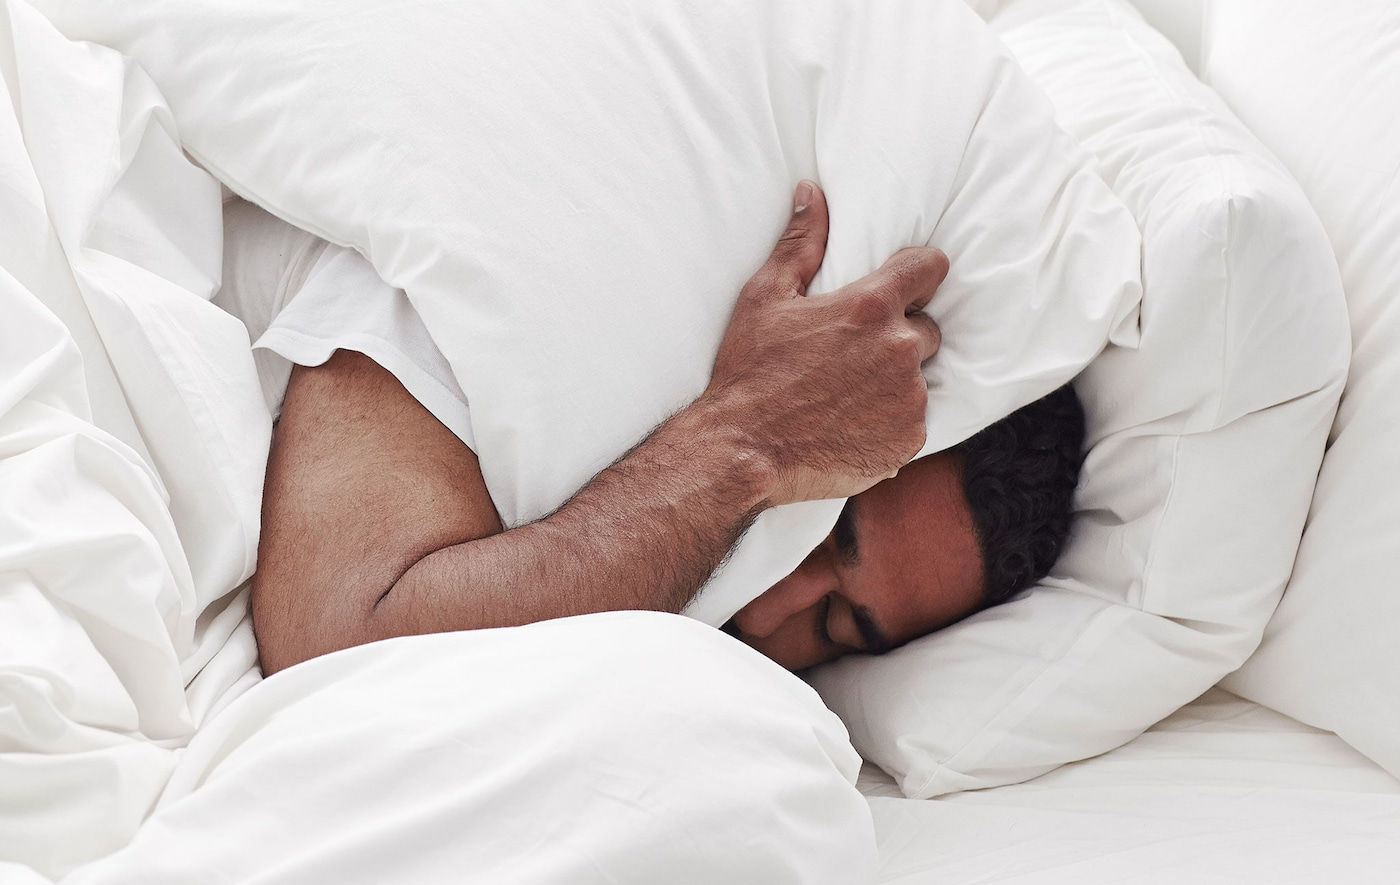 A man in bed covering his ears with a pillow.